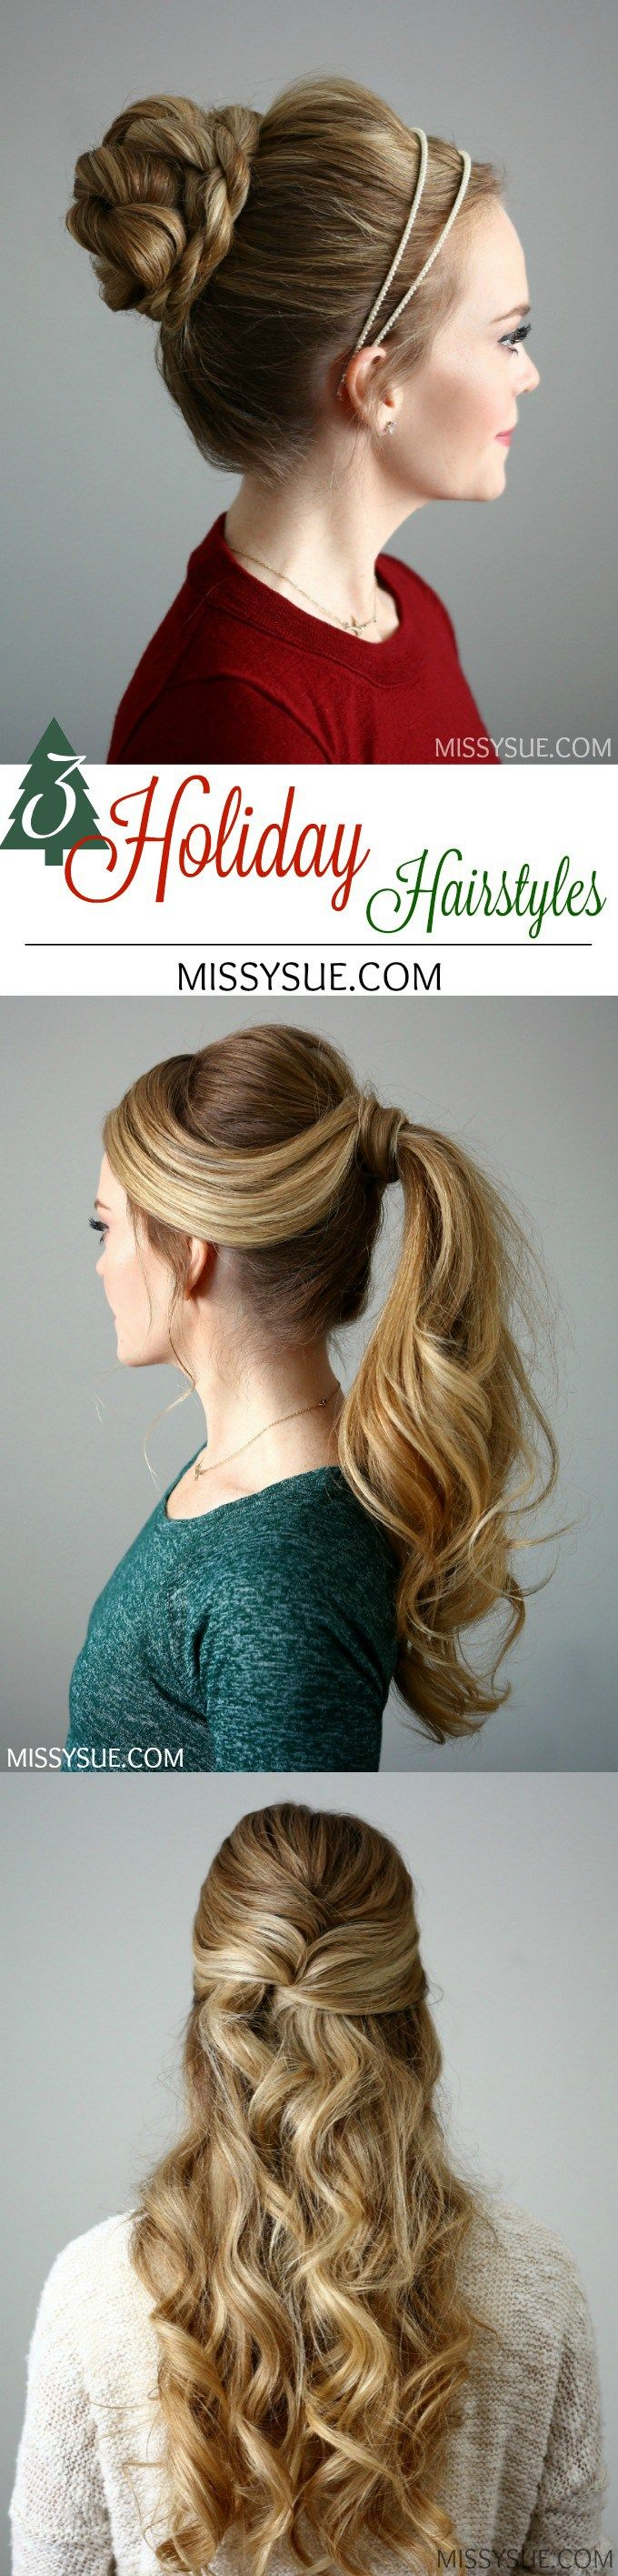 669 best Hairstyles images on Pinterest